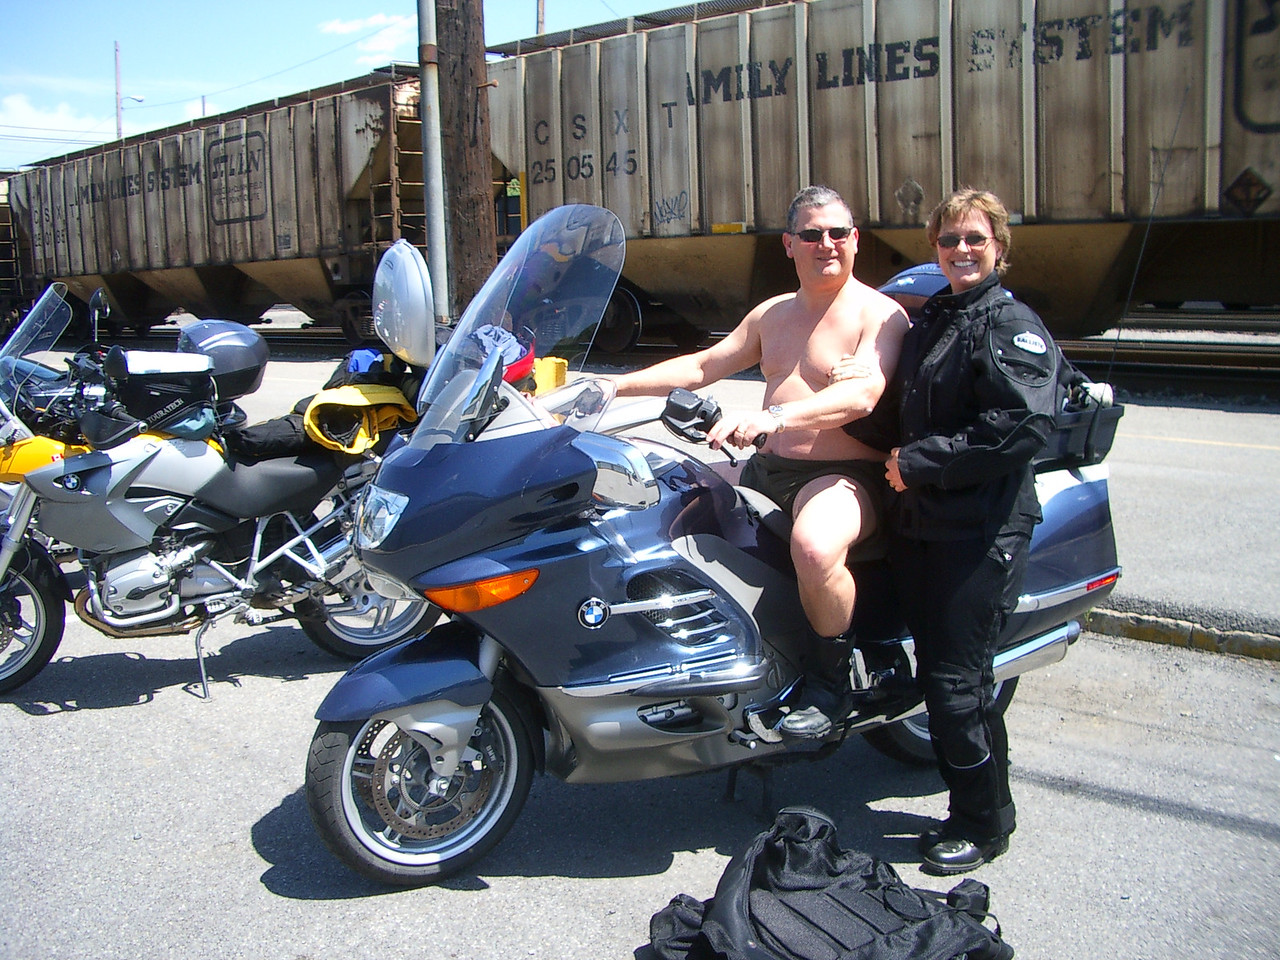 Phil always wanted to attend a nudist's ride.